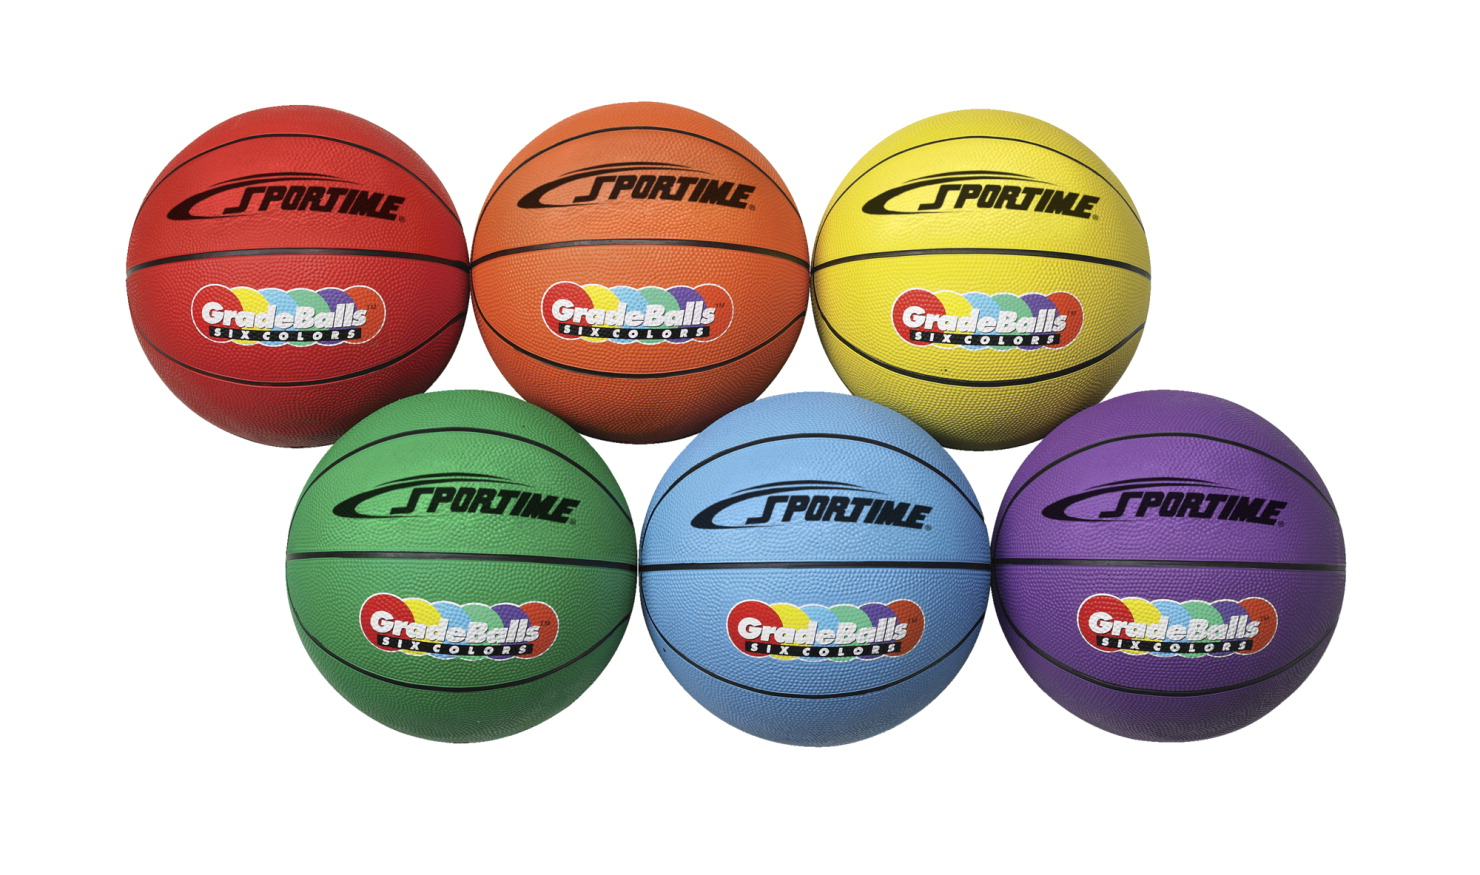 Sportime Gradeball Rubber Junior Basketballs, 27 Inches, Assorted Colors, Set of 6